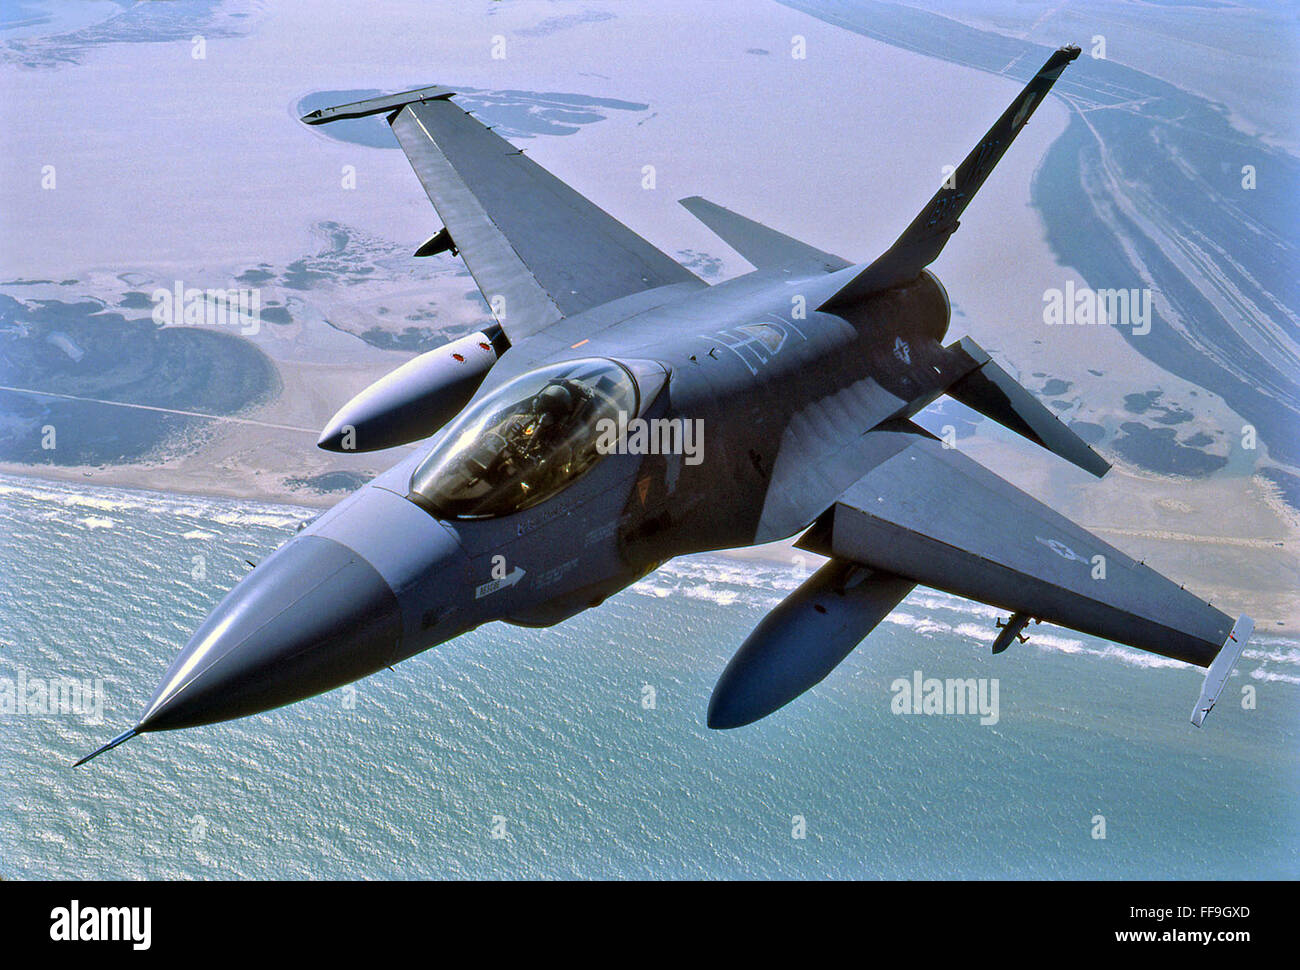 F-16 Fighting Falcon modern fighter aircraft Stock Photo